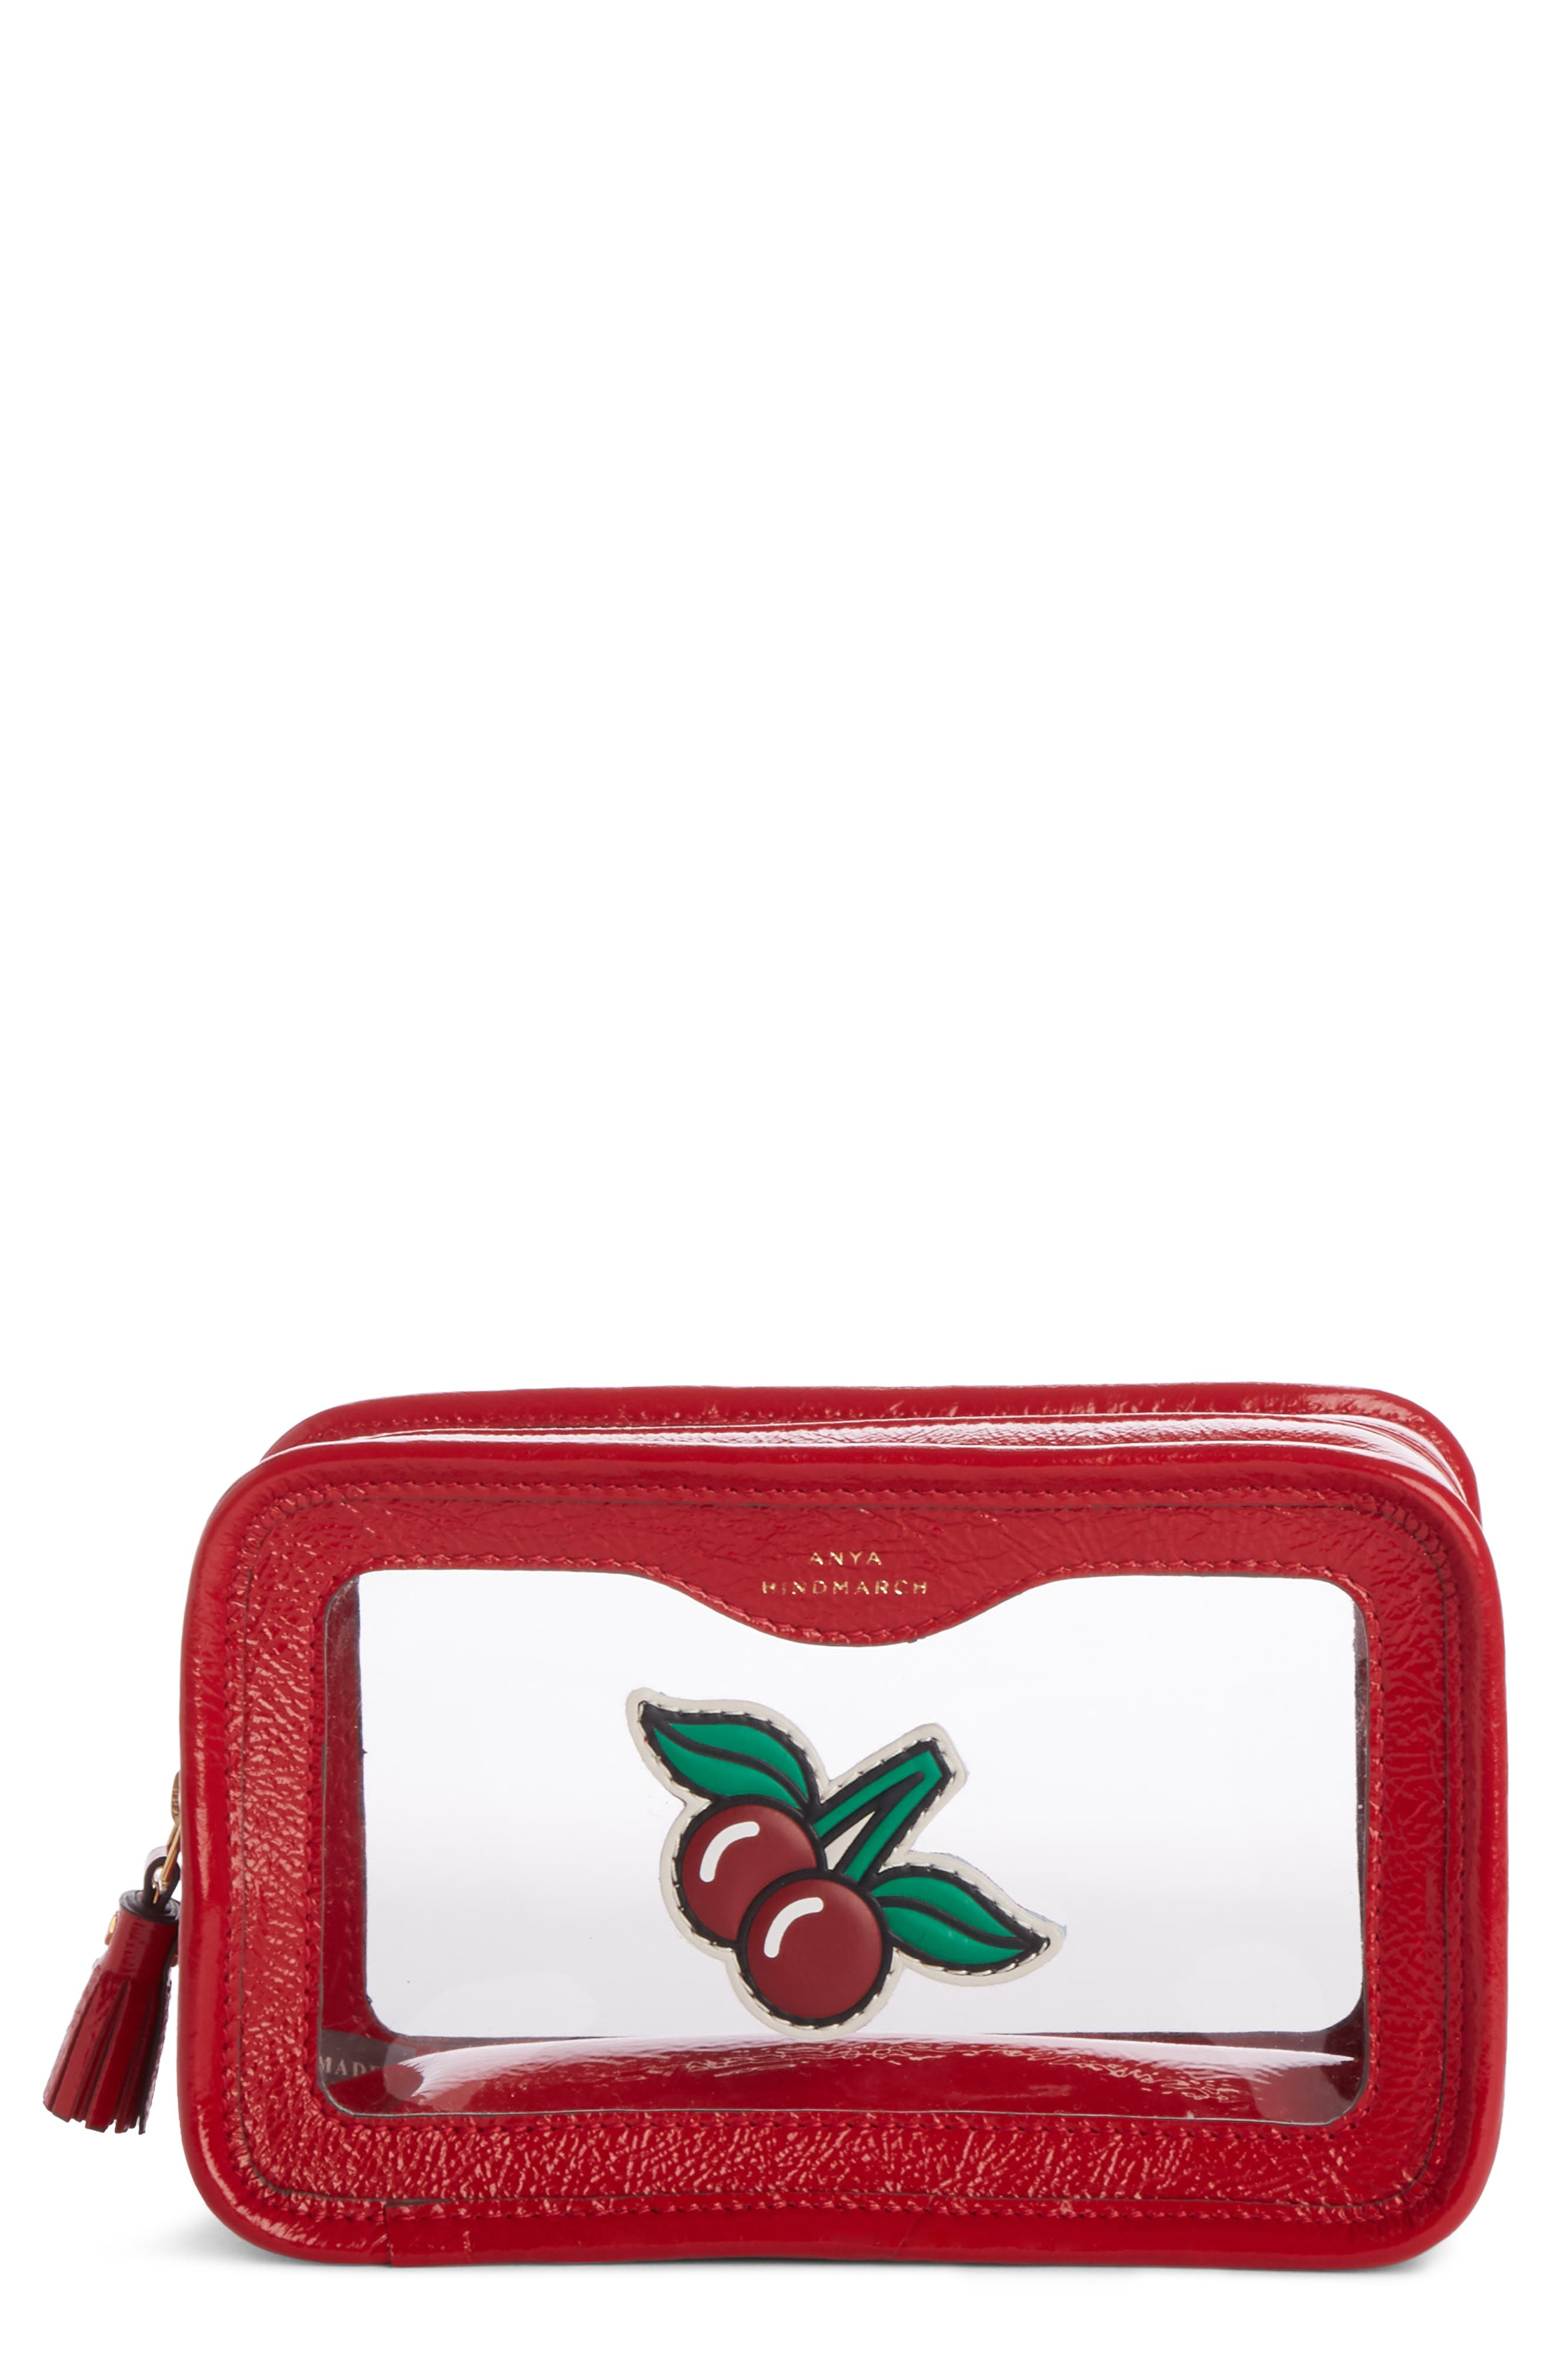 Rainy Day Cosmetic Bag,                         Main,                         color, Red